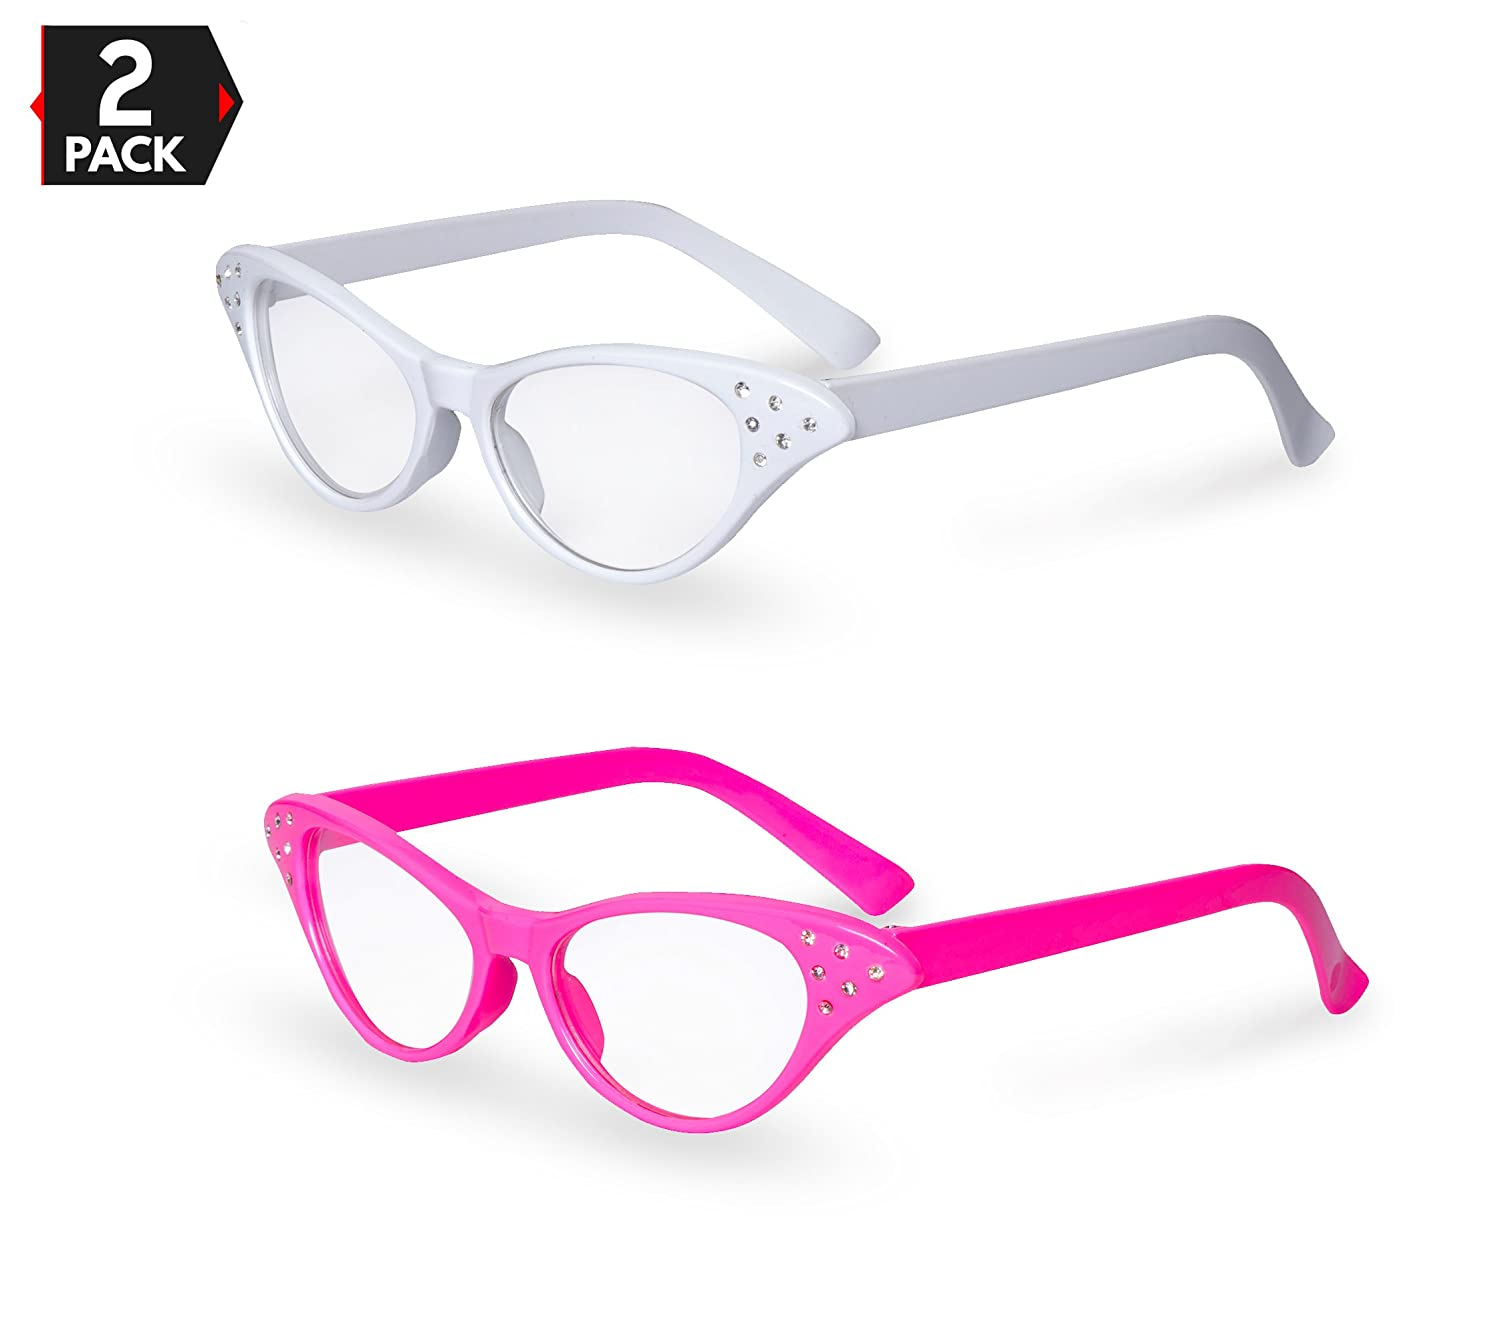 Pink / White Cat Eye Retro Costume Dress Up Hip Hop Rhinestone Glasses (2 Pack)